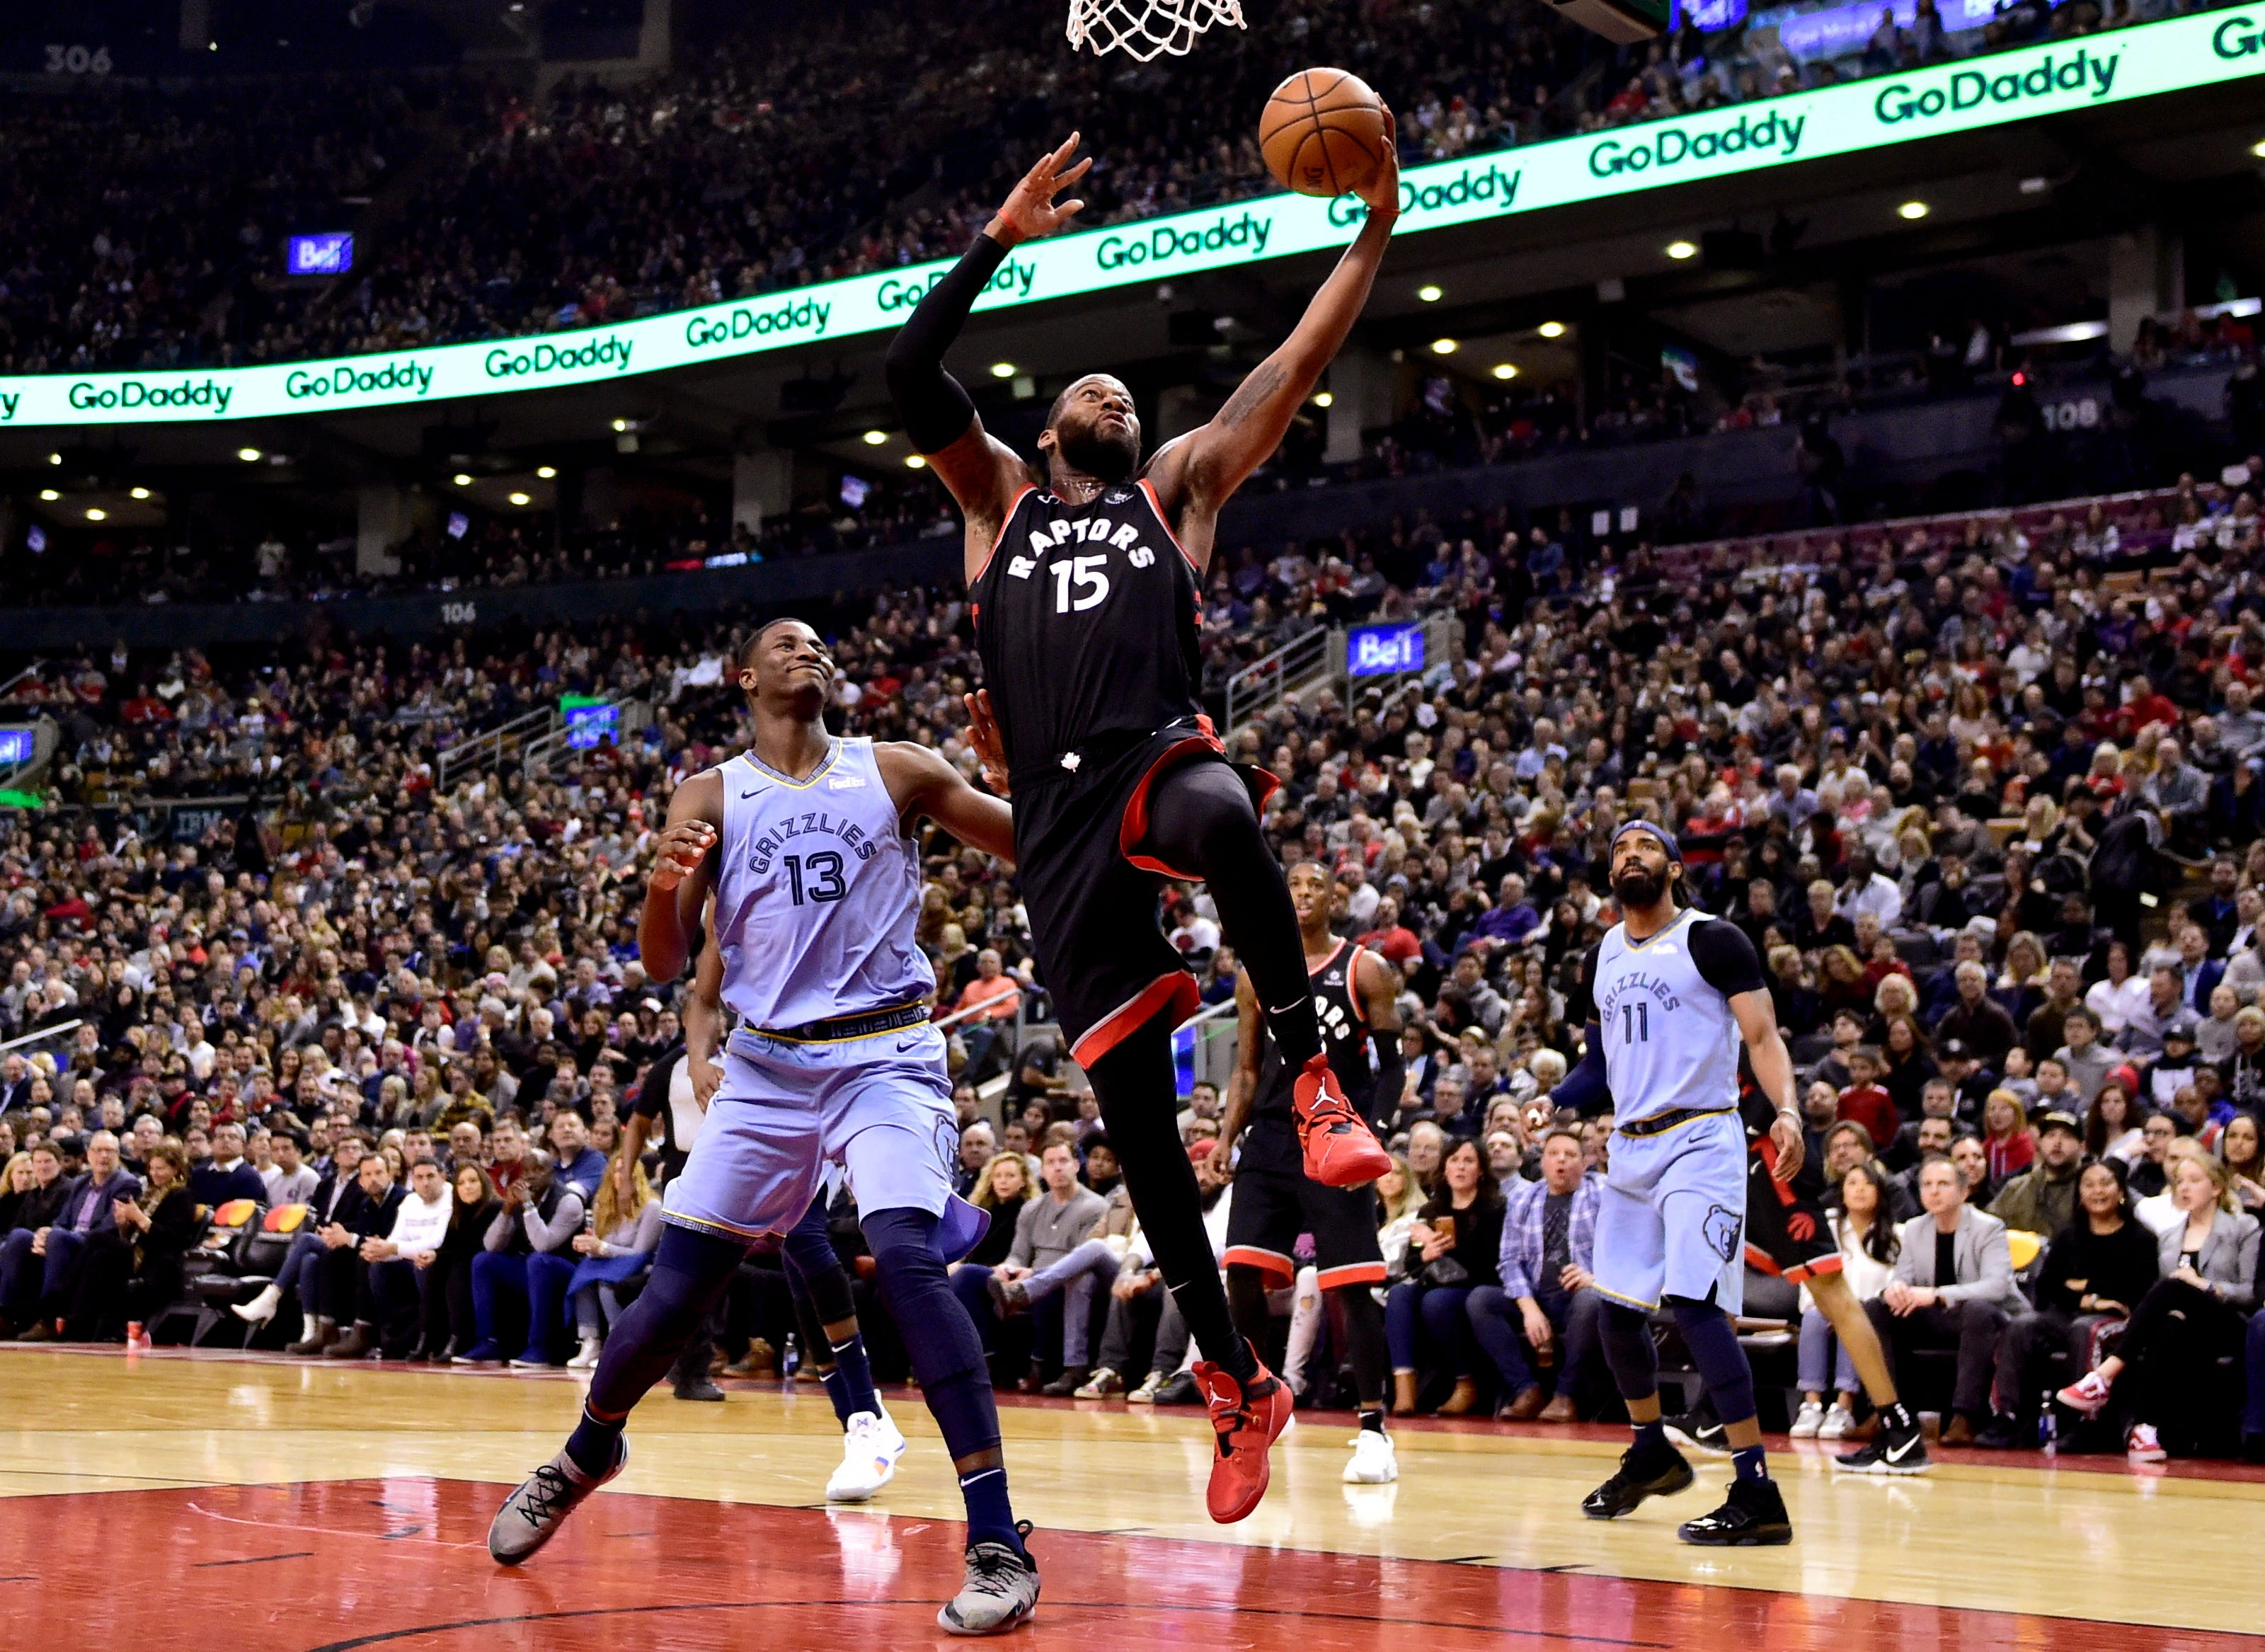 Green hits 7 3s in 3rd quarter, Raptors top Grizzlies 119-90